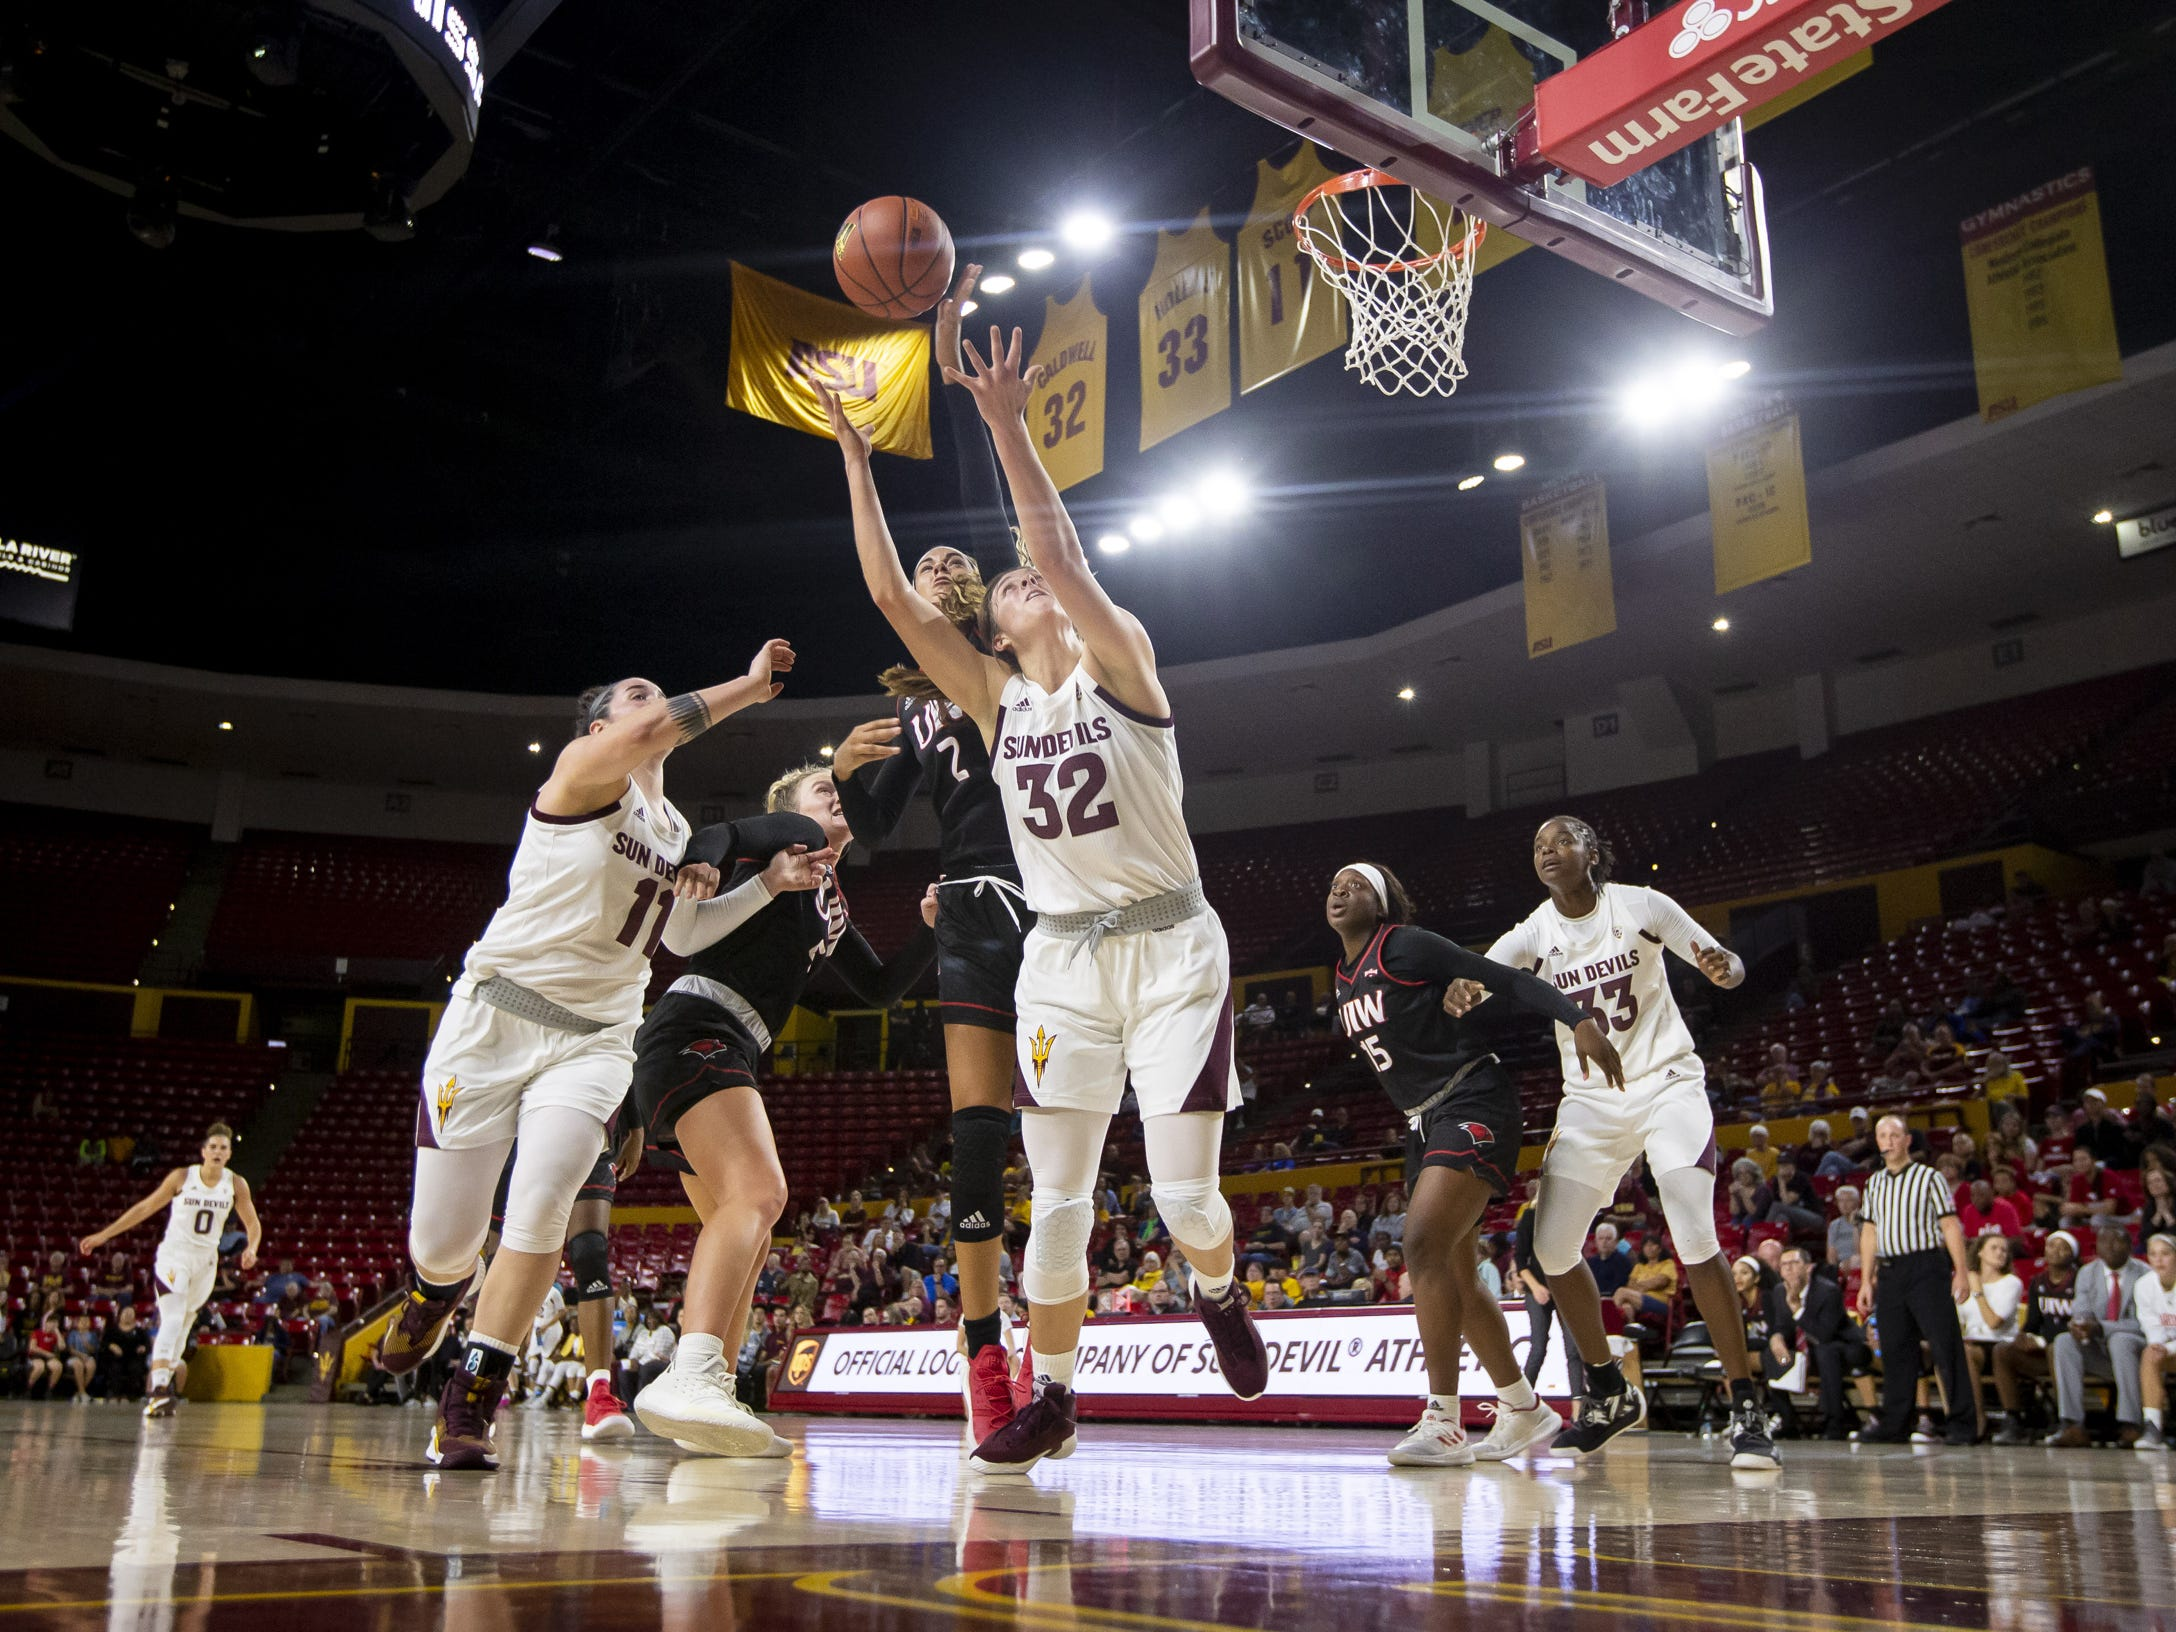 Forward Jayde Van Hyfte (32) of the Arizona State Sun Devils reaches for a rebound against the Incarnate Word Cardinals at Wells Fargo Arena on Tuesday, November 6, 2018 in Tempe, Arizona.